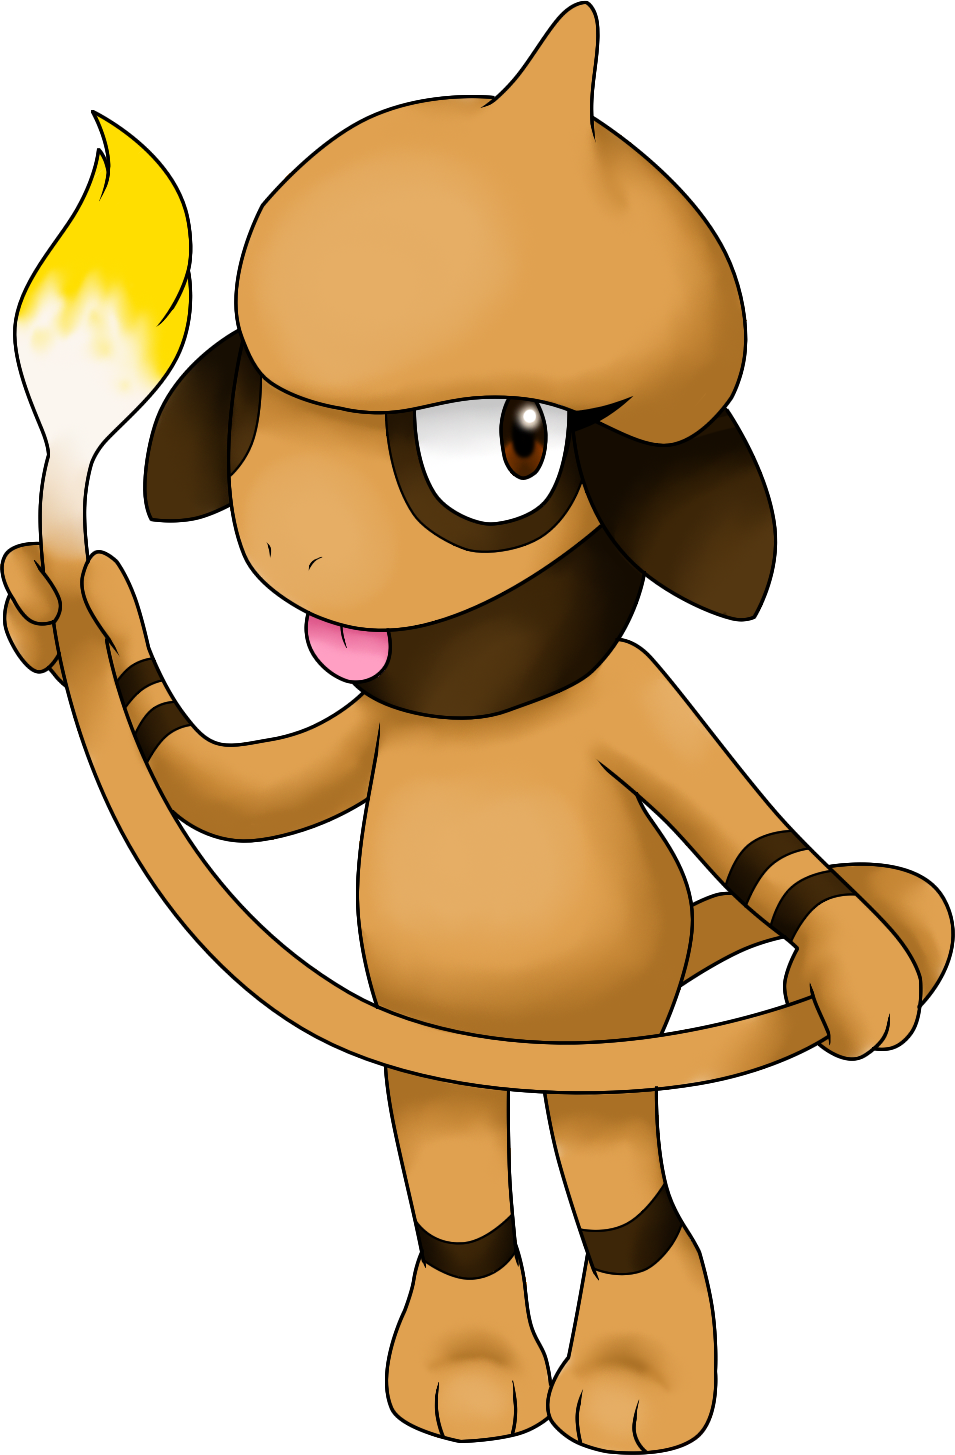 Smeargle Artist Photos Download Jpg Png Gif Raw Tiff Psd Pdf And Watch Online